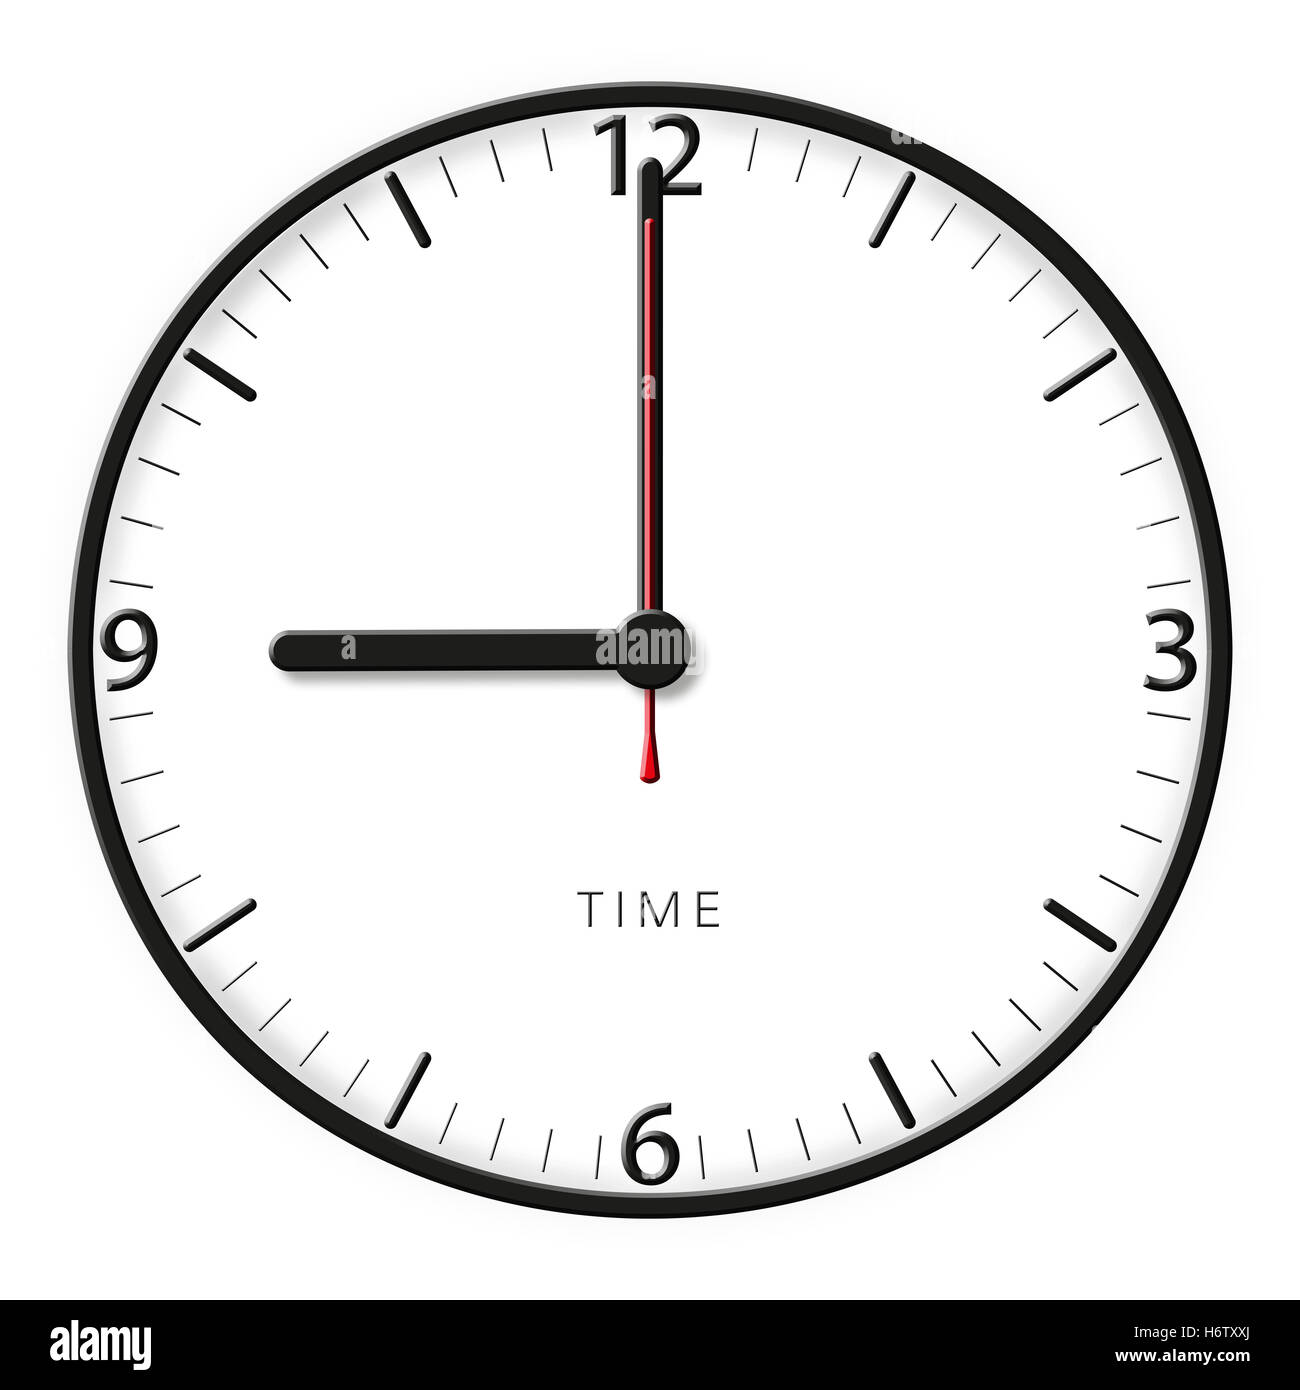 clock pointer time seconds minutes hours apples apple in the morning hour minute early drawing photo picture image - Stock Image